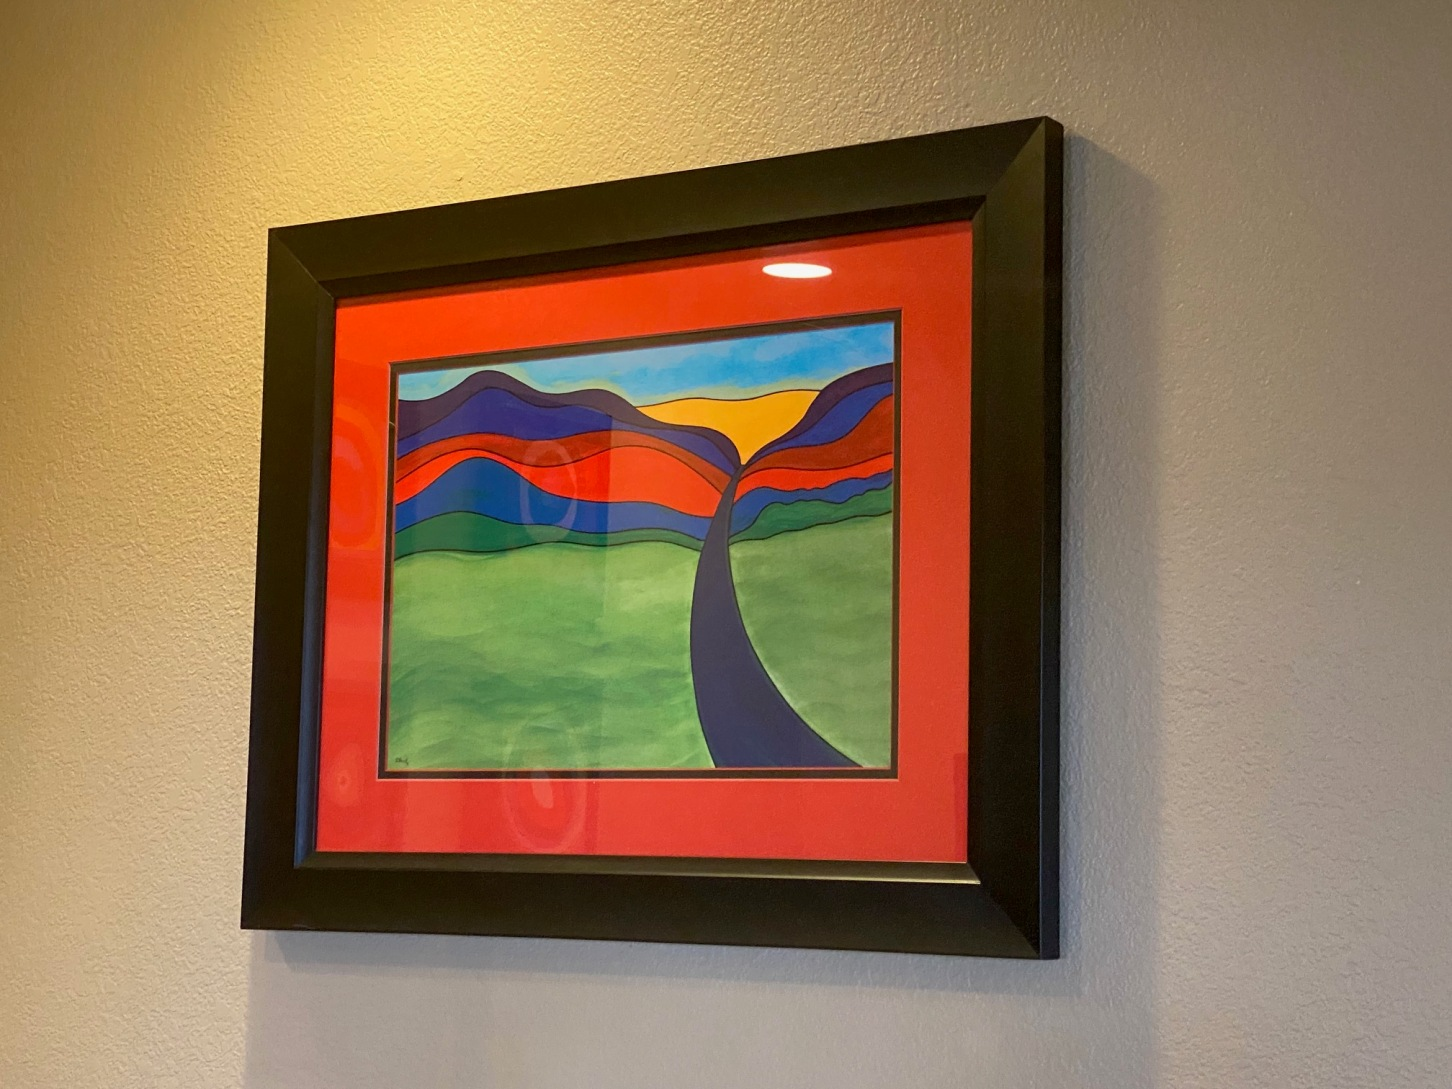 Art Installations in Hotels & Reception Areas